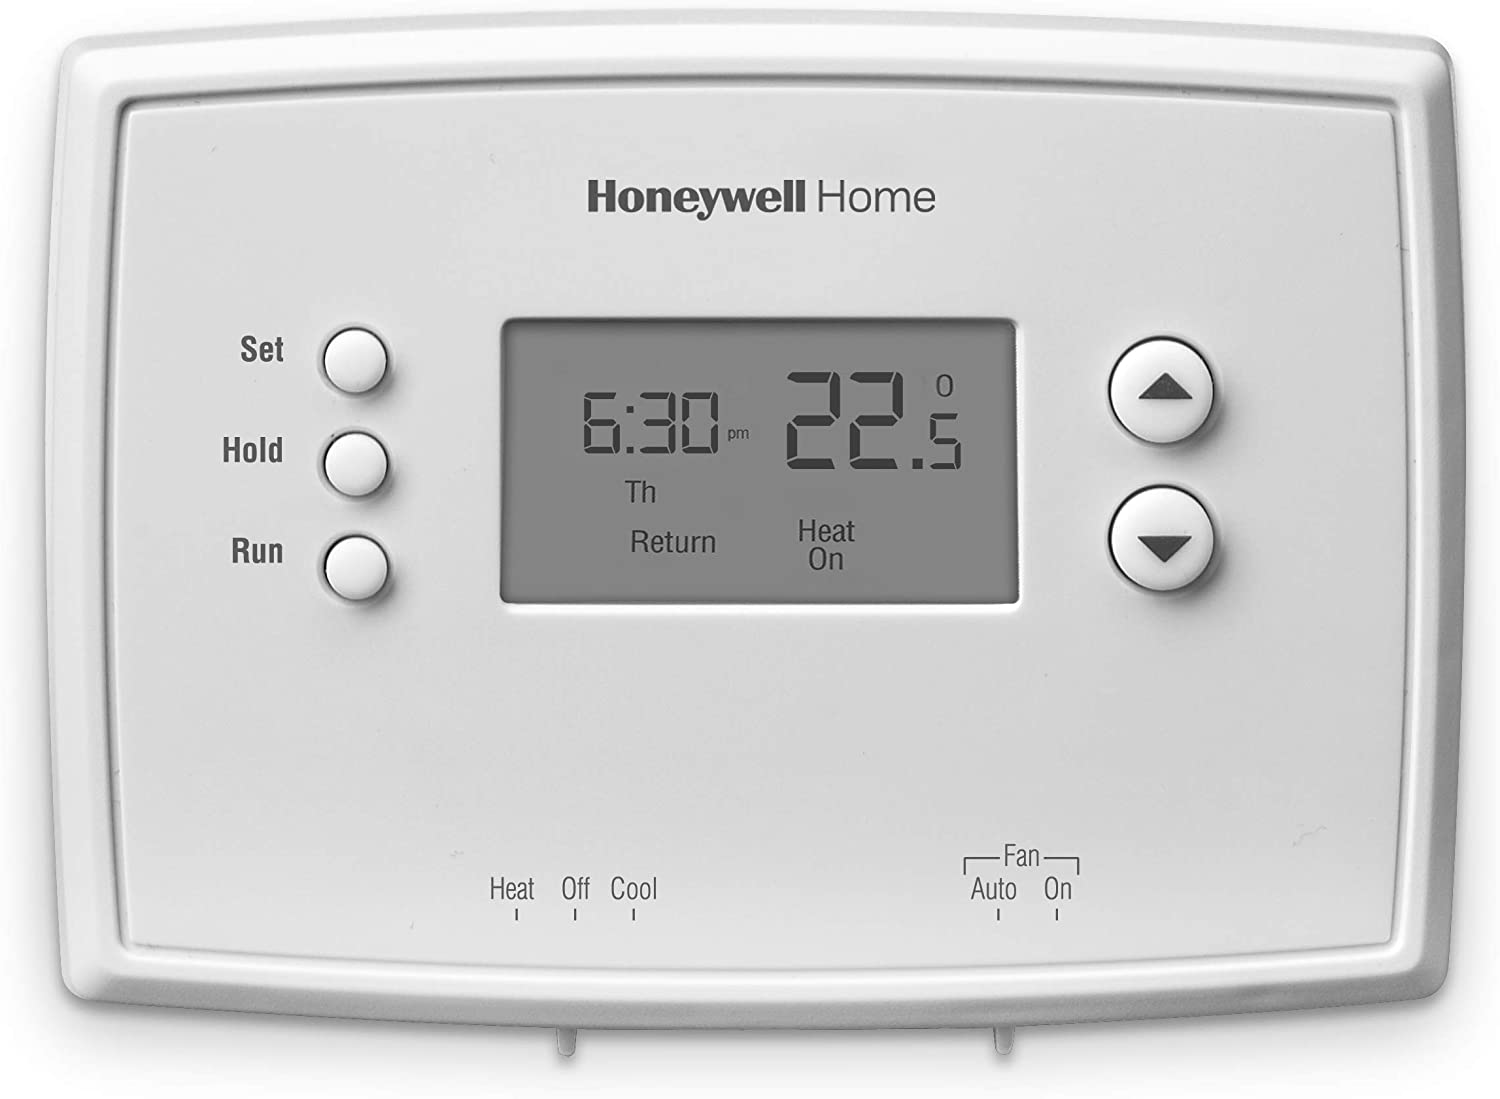 Honeywell Home RTH221B 1-Week Programmable Thermostat Tools & Home ...